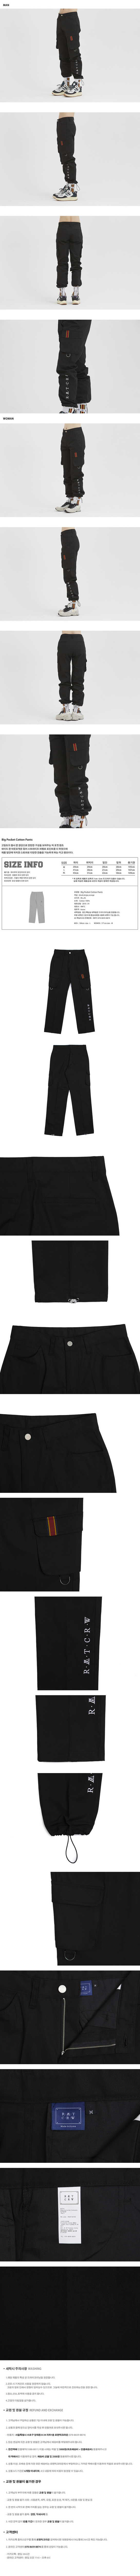 로맨틱크라운(ROMANTIC CROWN) Big Pocket Cotton Pants_Black